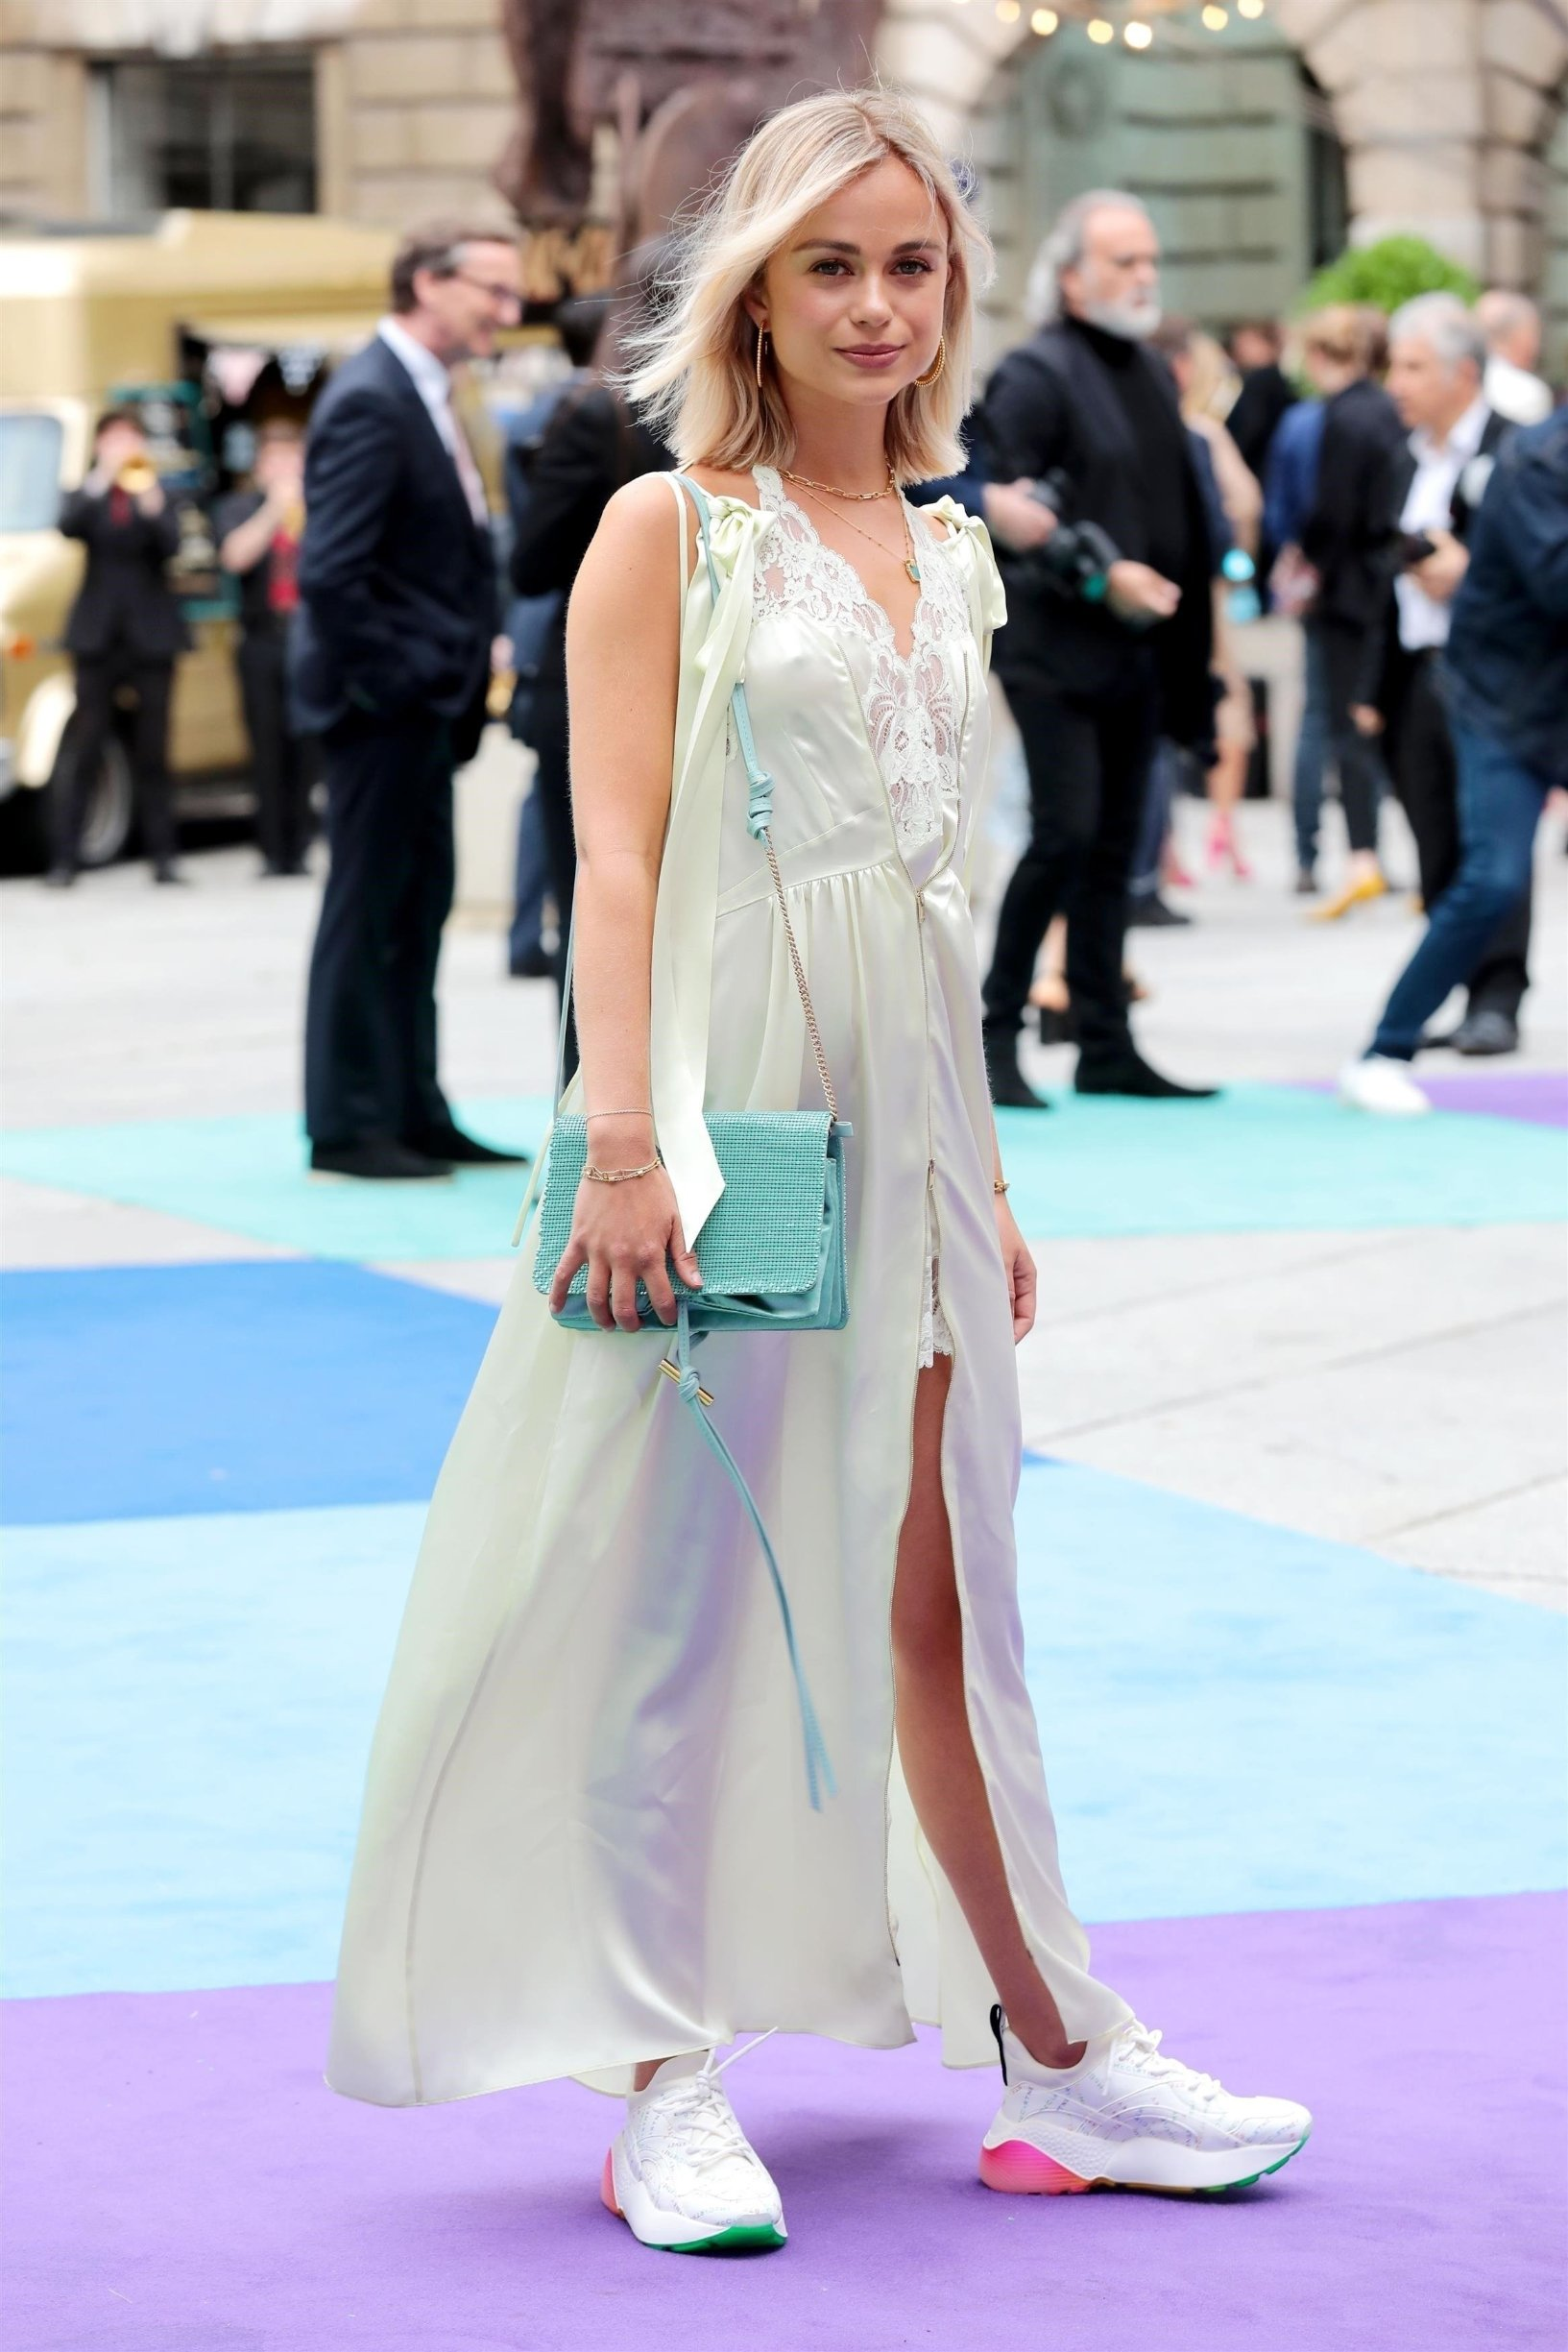 LONDON, UNITED KINGDOM  - Celebrities attend the Royal Academy of Arts Summer exhibition preview party at Royal Academy of Arts, London, UK.  *UK Clients - Pictures Containing Children Please Pixelate Face Prior To Publication*, Image: 443299236, License: Rights-managed, Restrictions: , Model Release: no, Credit line: Profimedia, Backgrid UK